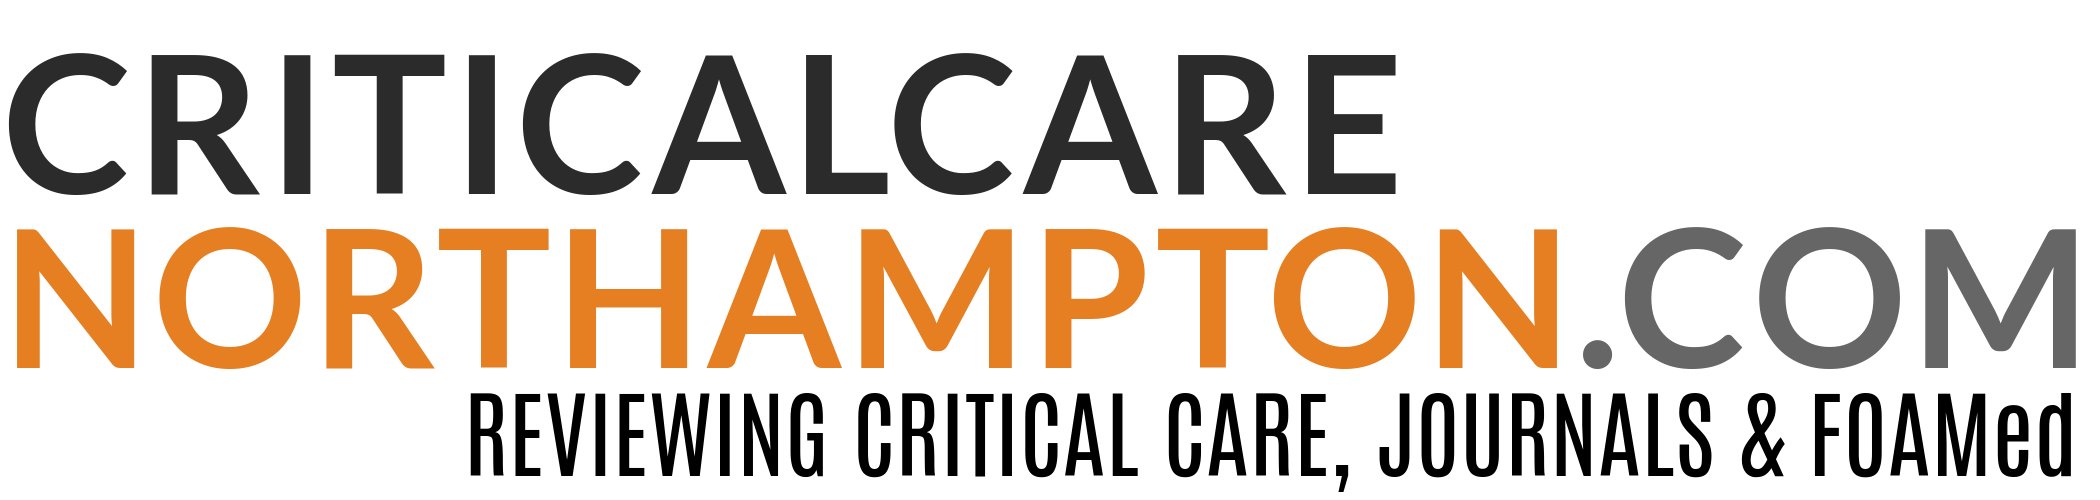 Critical Care Northampton